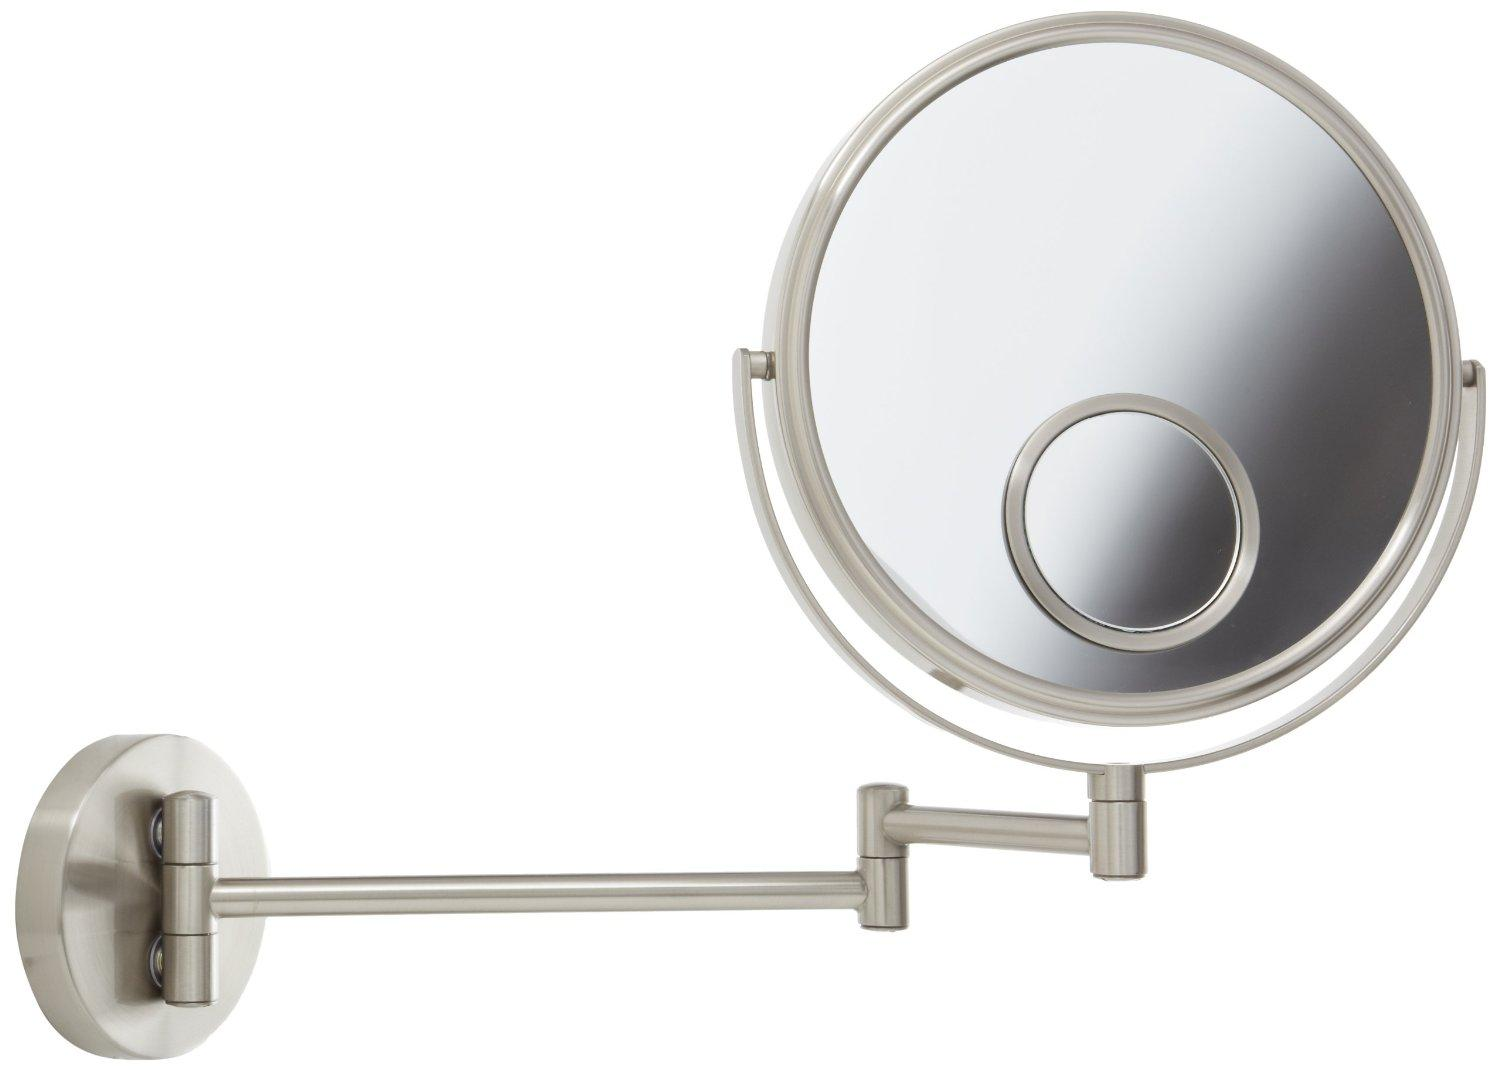 View larger - Amazon.com : Jerdon JP7510N 8-Inch Wall Mount Makeup Mirror With